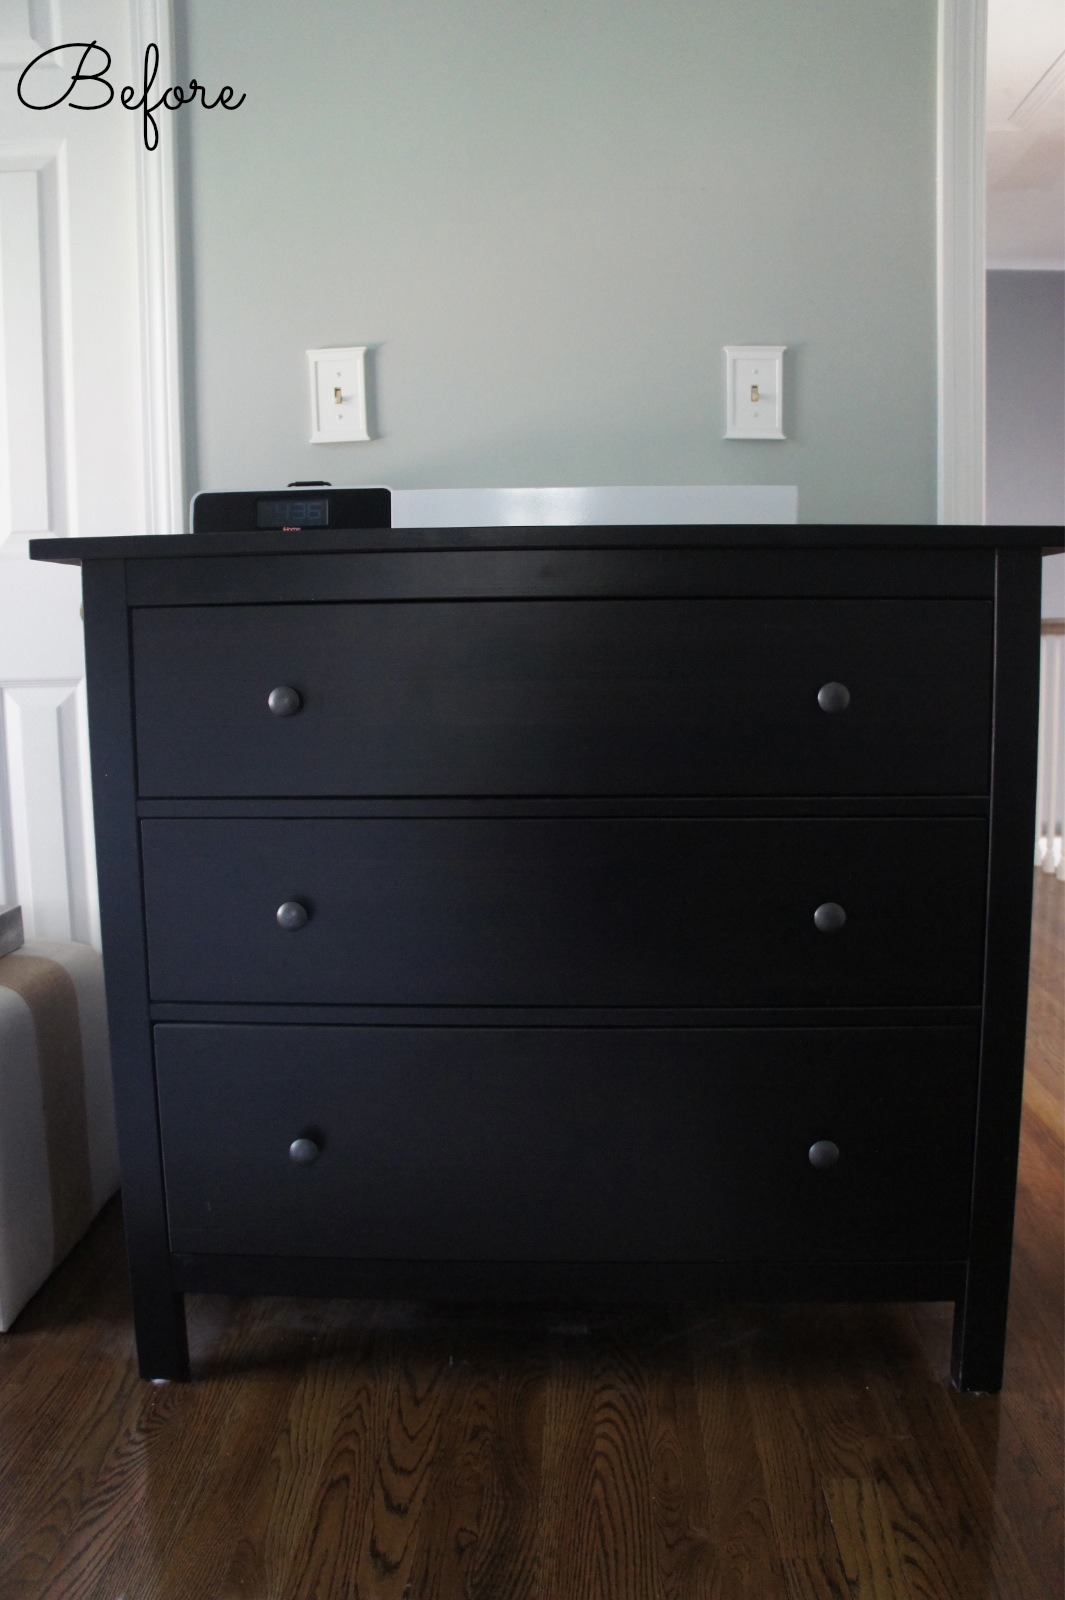 Ikea Hemnes Dresser  Guest Bedroom Update. Home with Baxter  Ikea Hemnes Dresser  Guest Bedroom Update